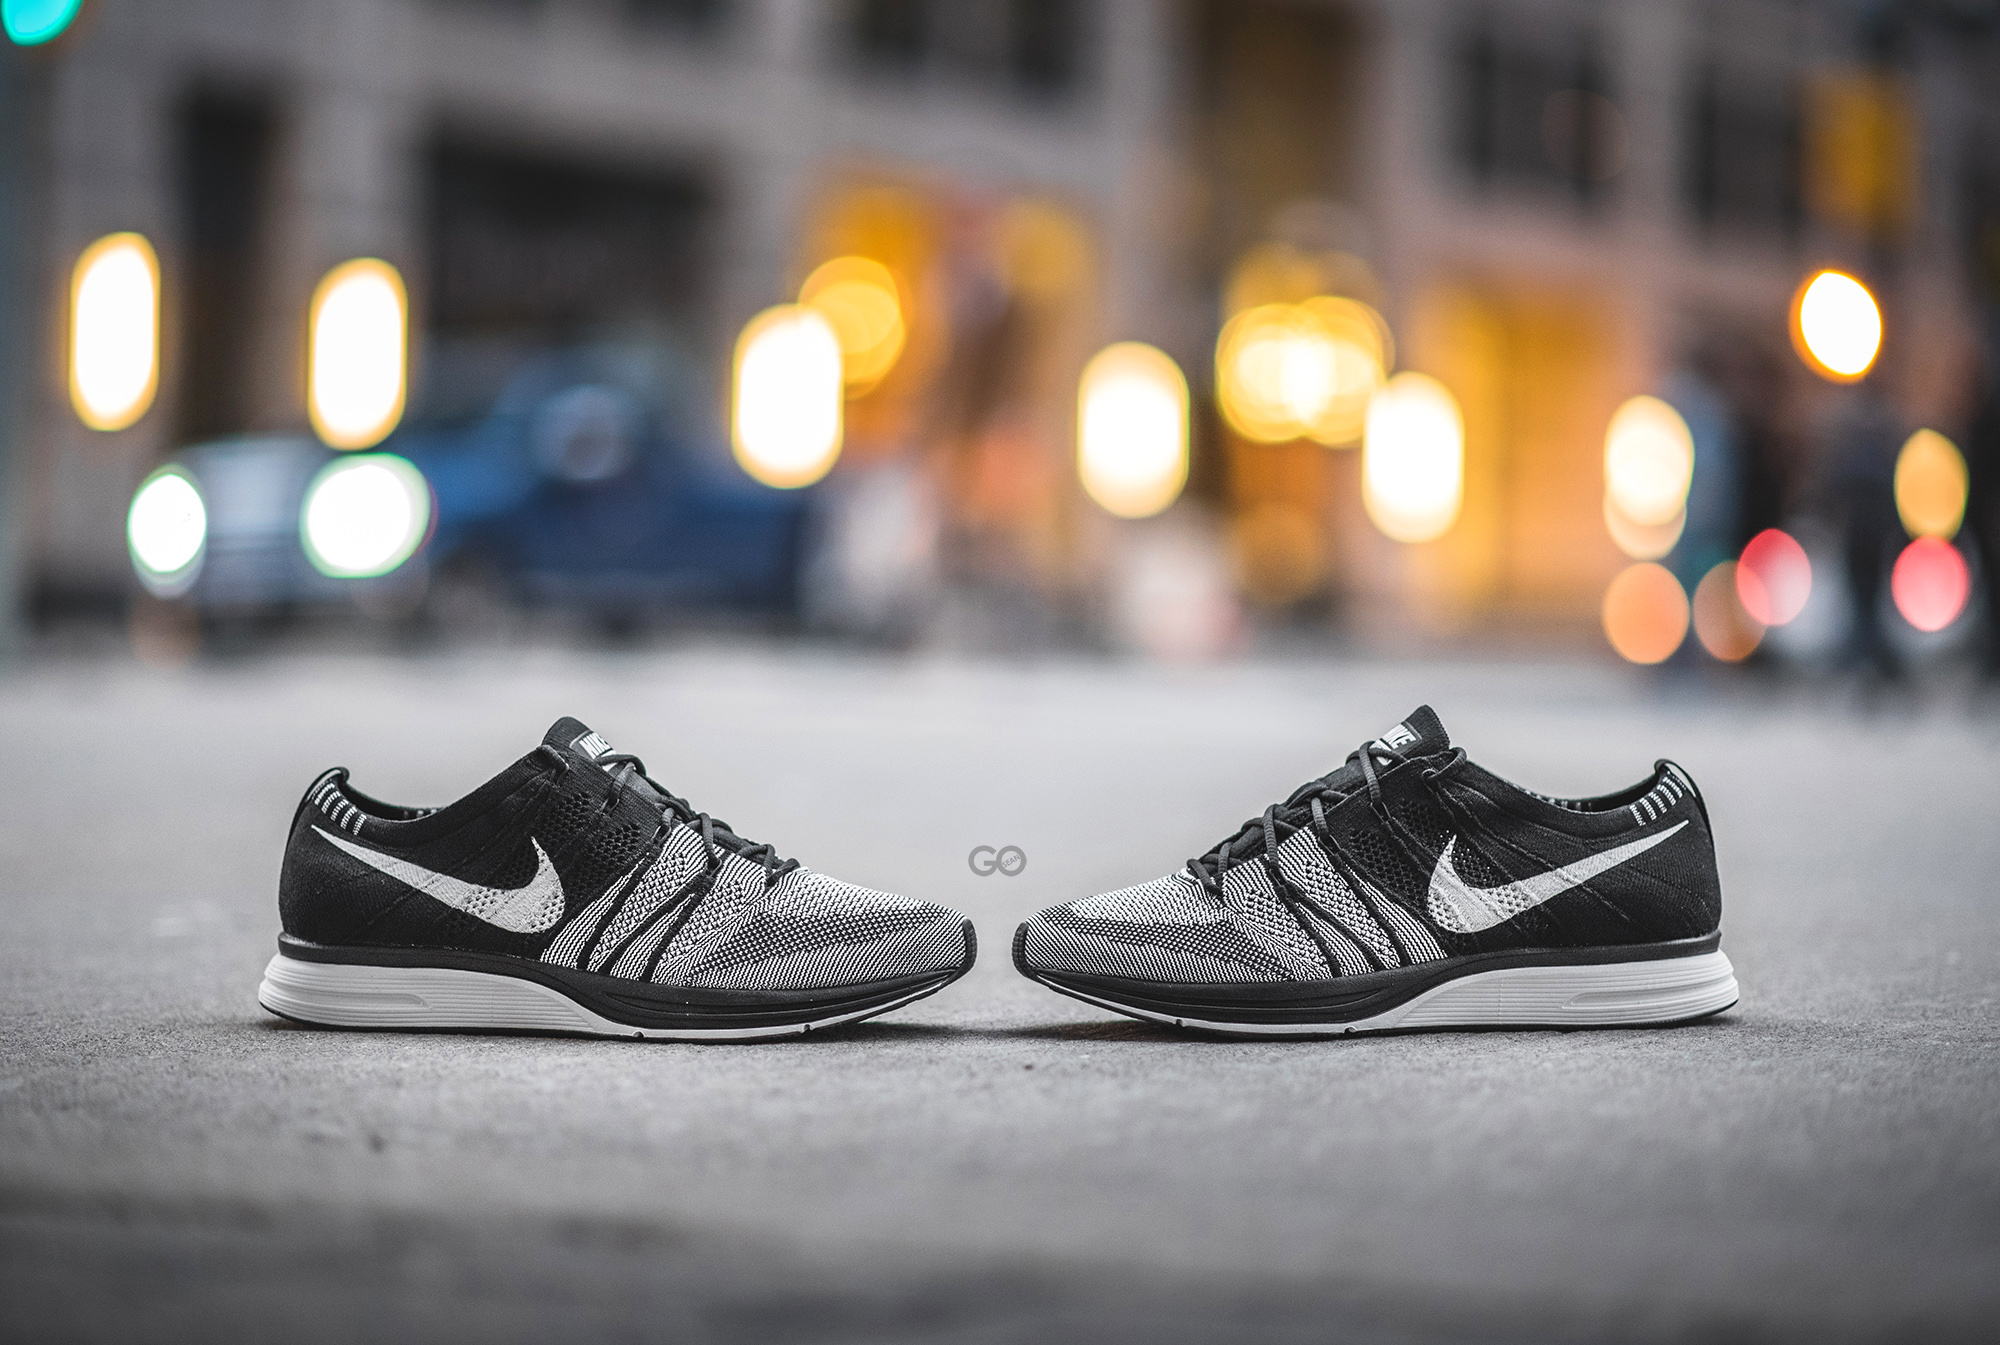 c9c995b4f9c3 ... discount nike flyknit trainer black white oreo review sean go fad90  d6d5d